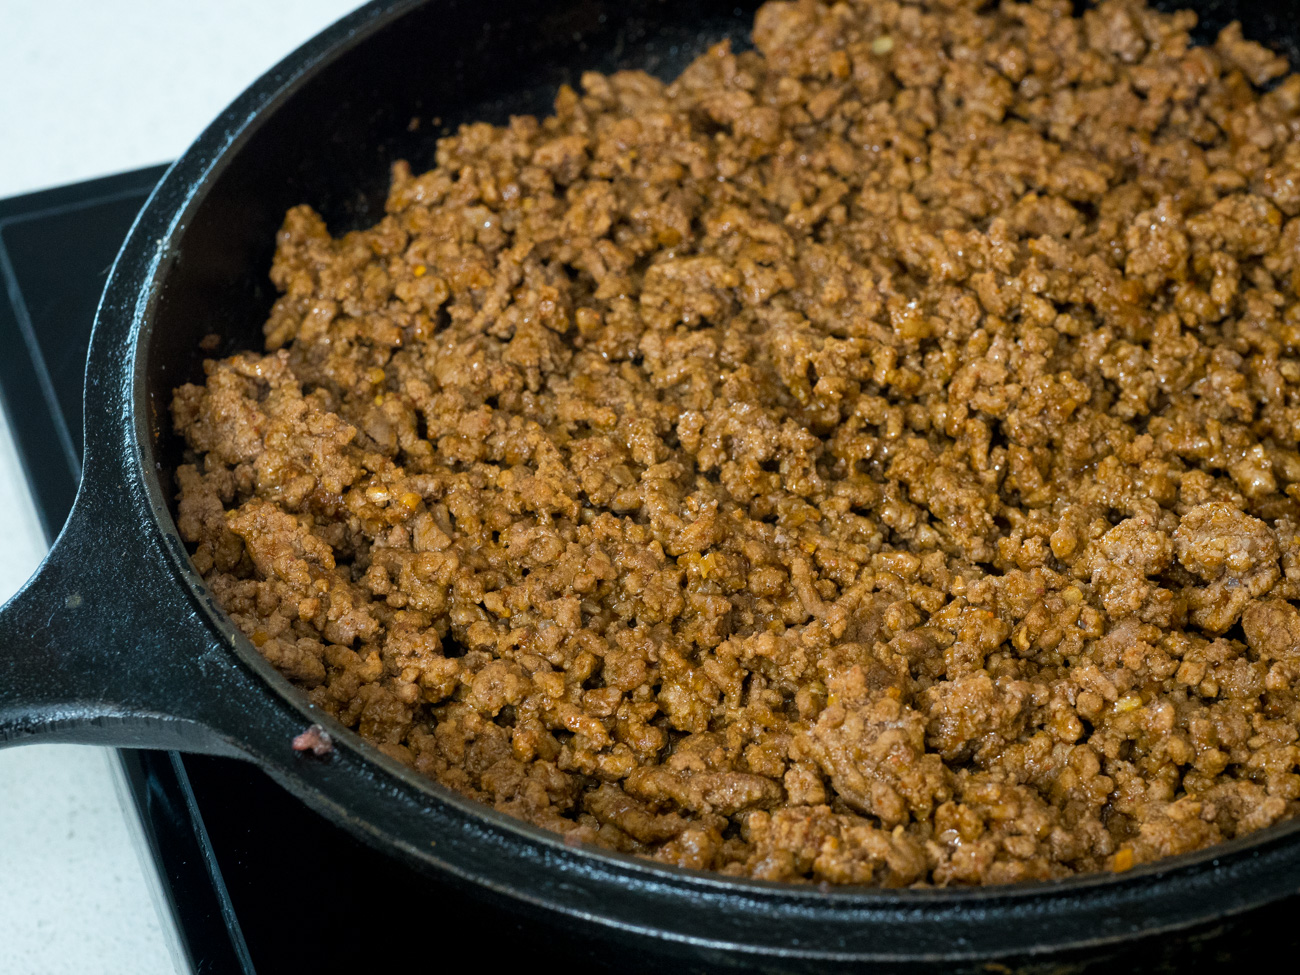 In a large skillet over medium heat, brown the ground beef and onions until beef is no longer pink. Drain any excess fat and season beef with taco seasoning. Add 1/4 cup water and simmer until water has reduced completely. Remove from heat and set aside.